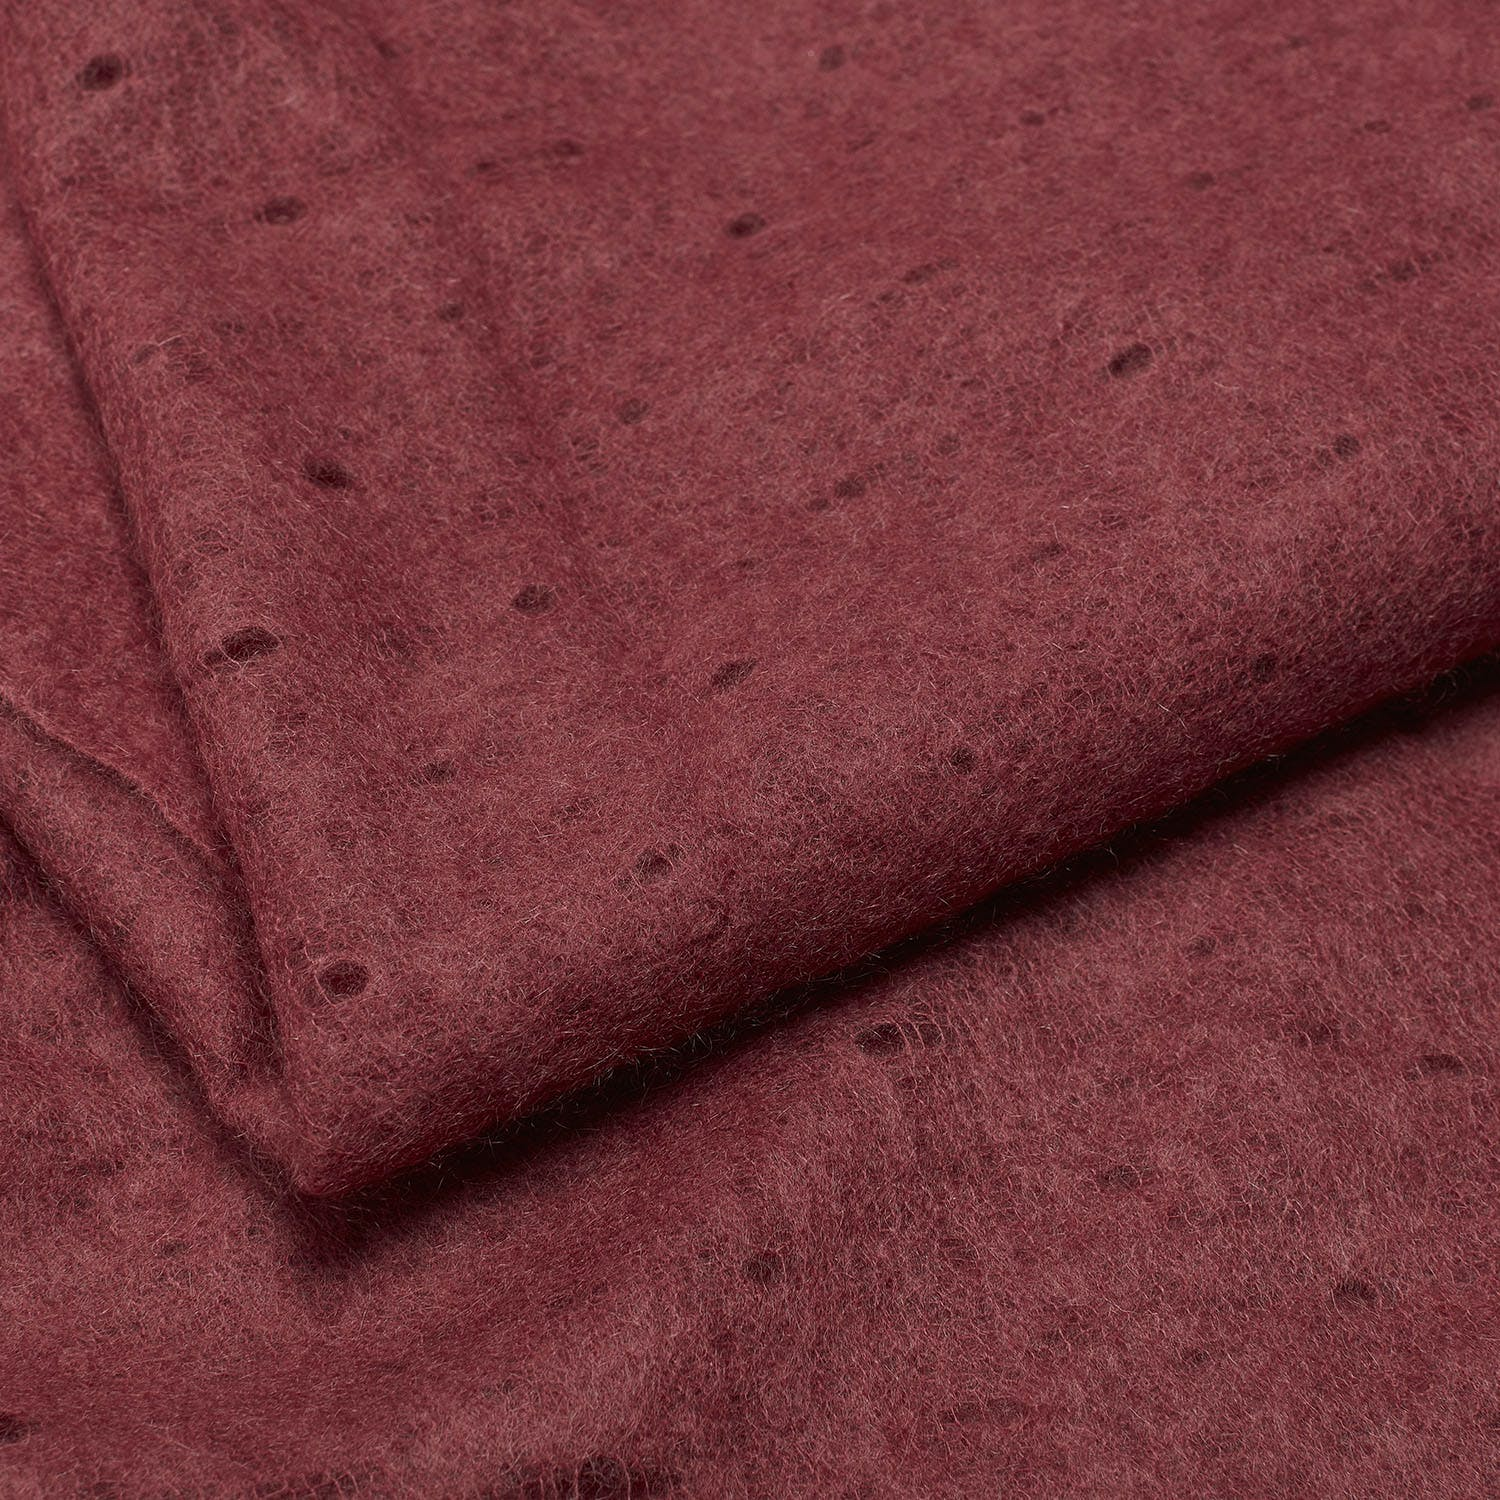 abcDNA Cashmere Micro Throw Red Earth